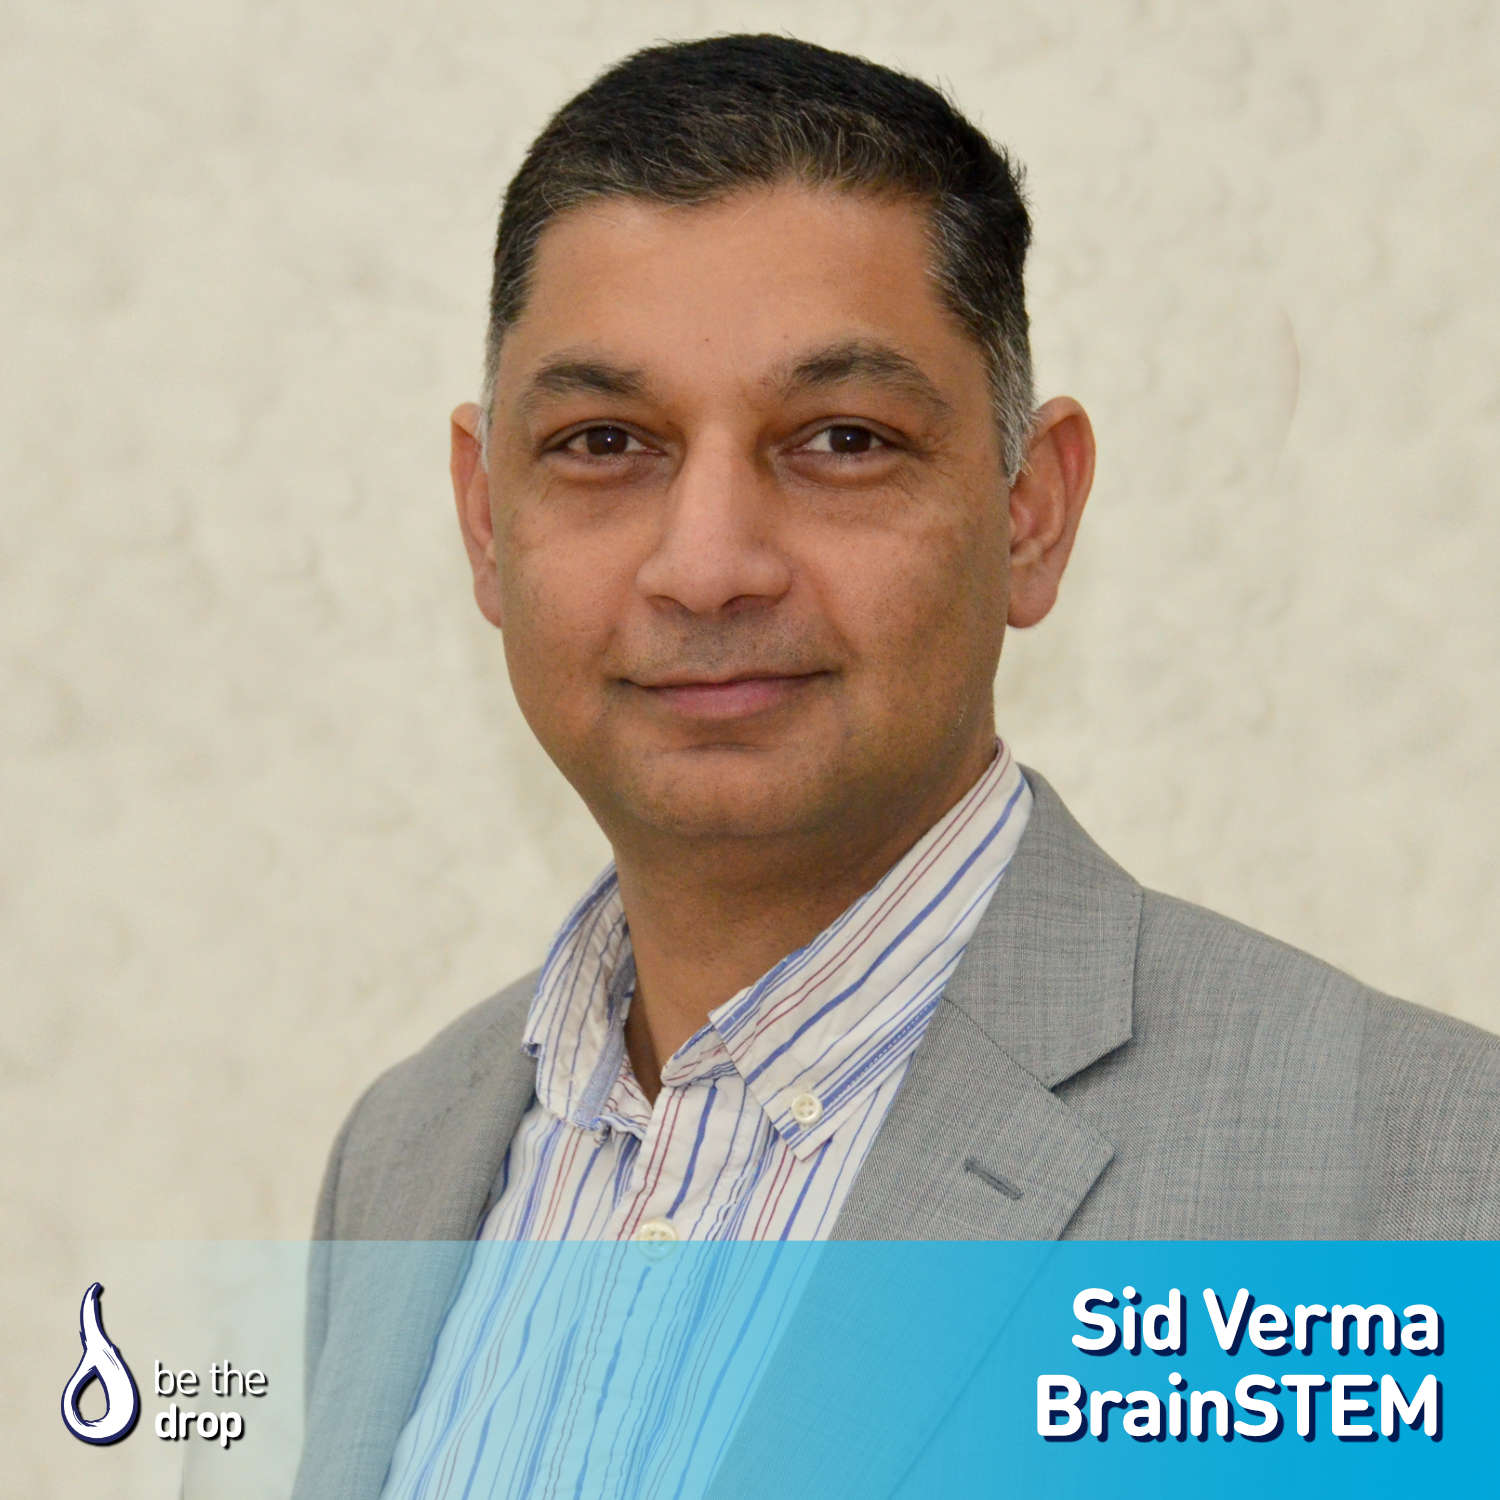 Inspiring New Leaders In STEM with Sid Verma [Podcast]